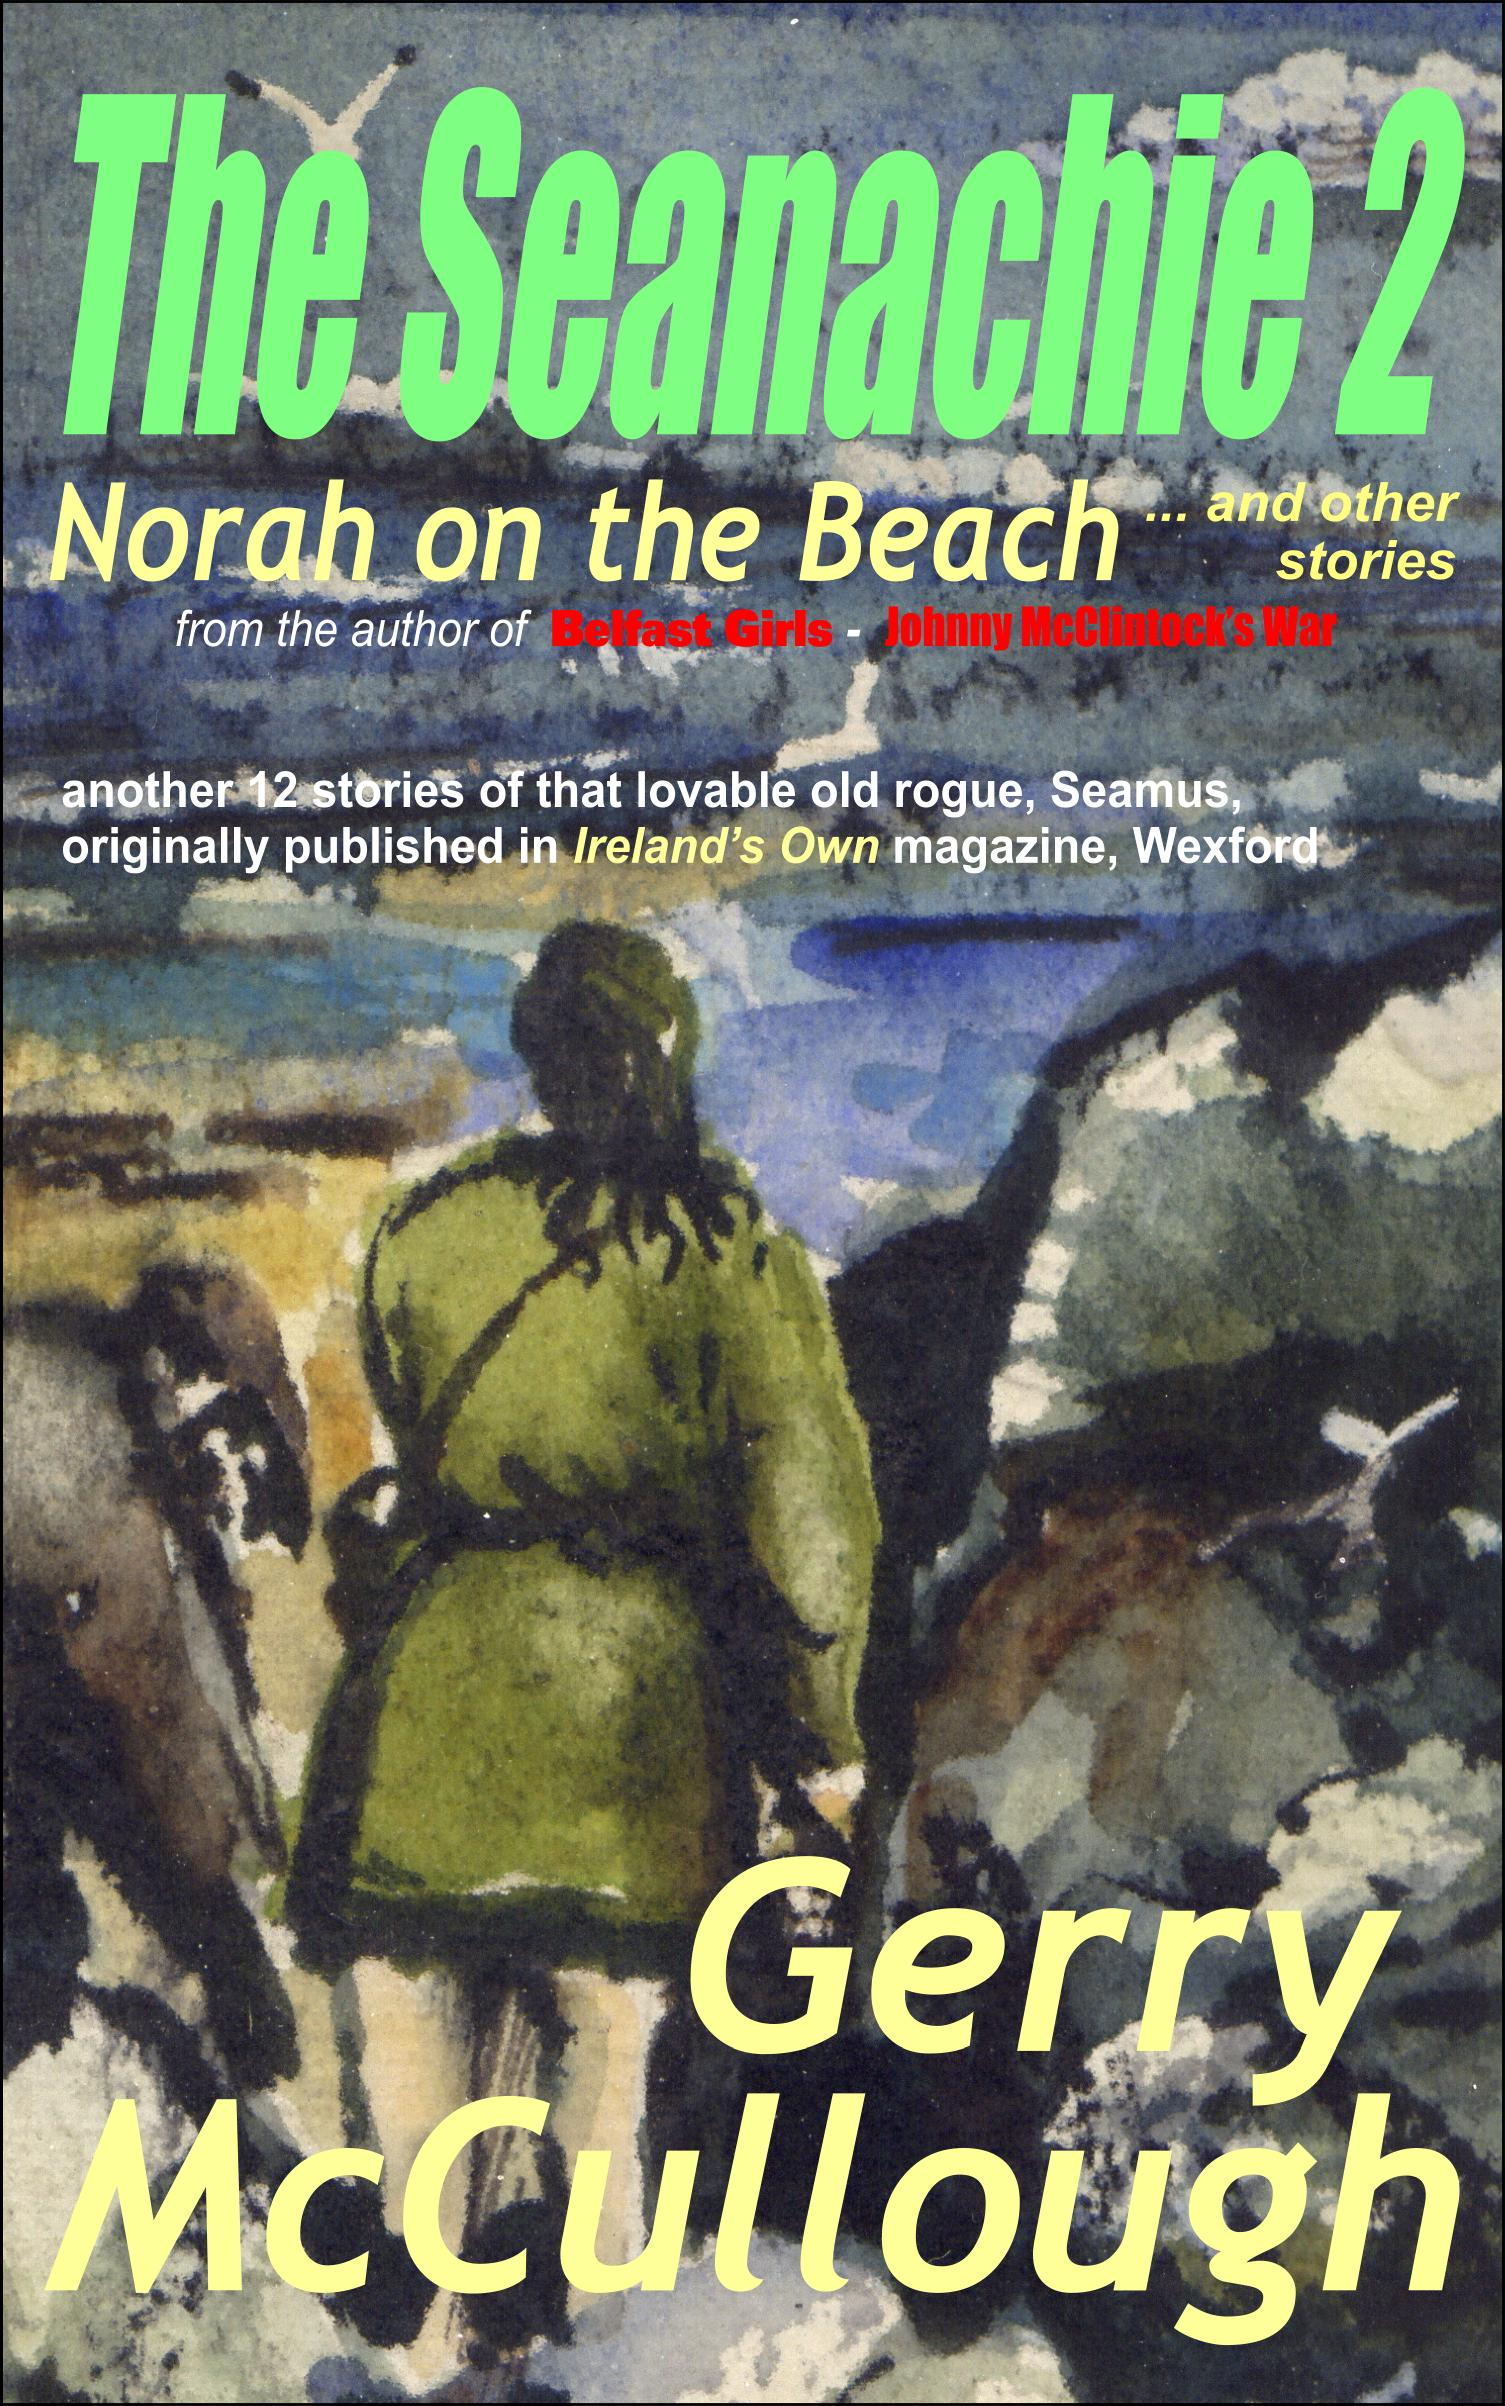 Buy 'The Seanachie 2: Norah on the Beach and other stories from Amazon & other outlets